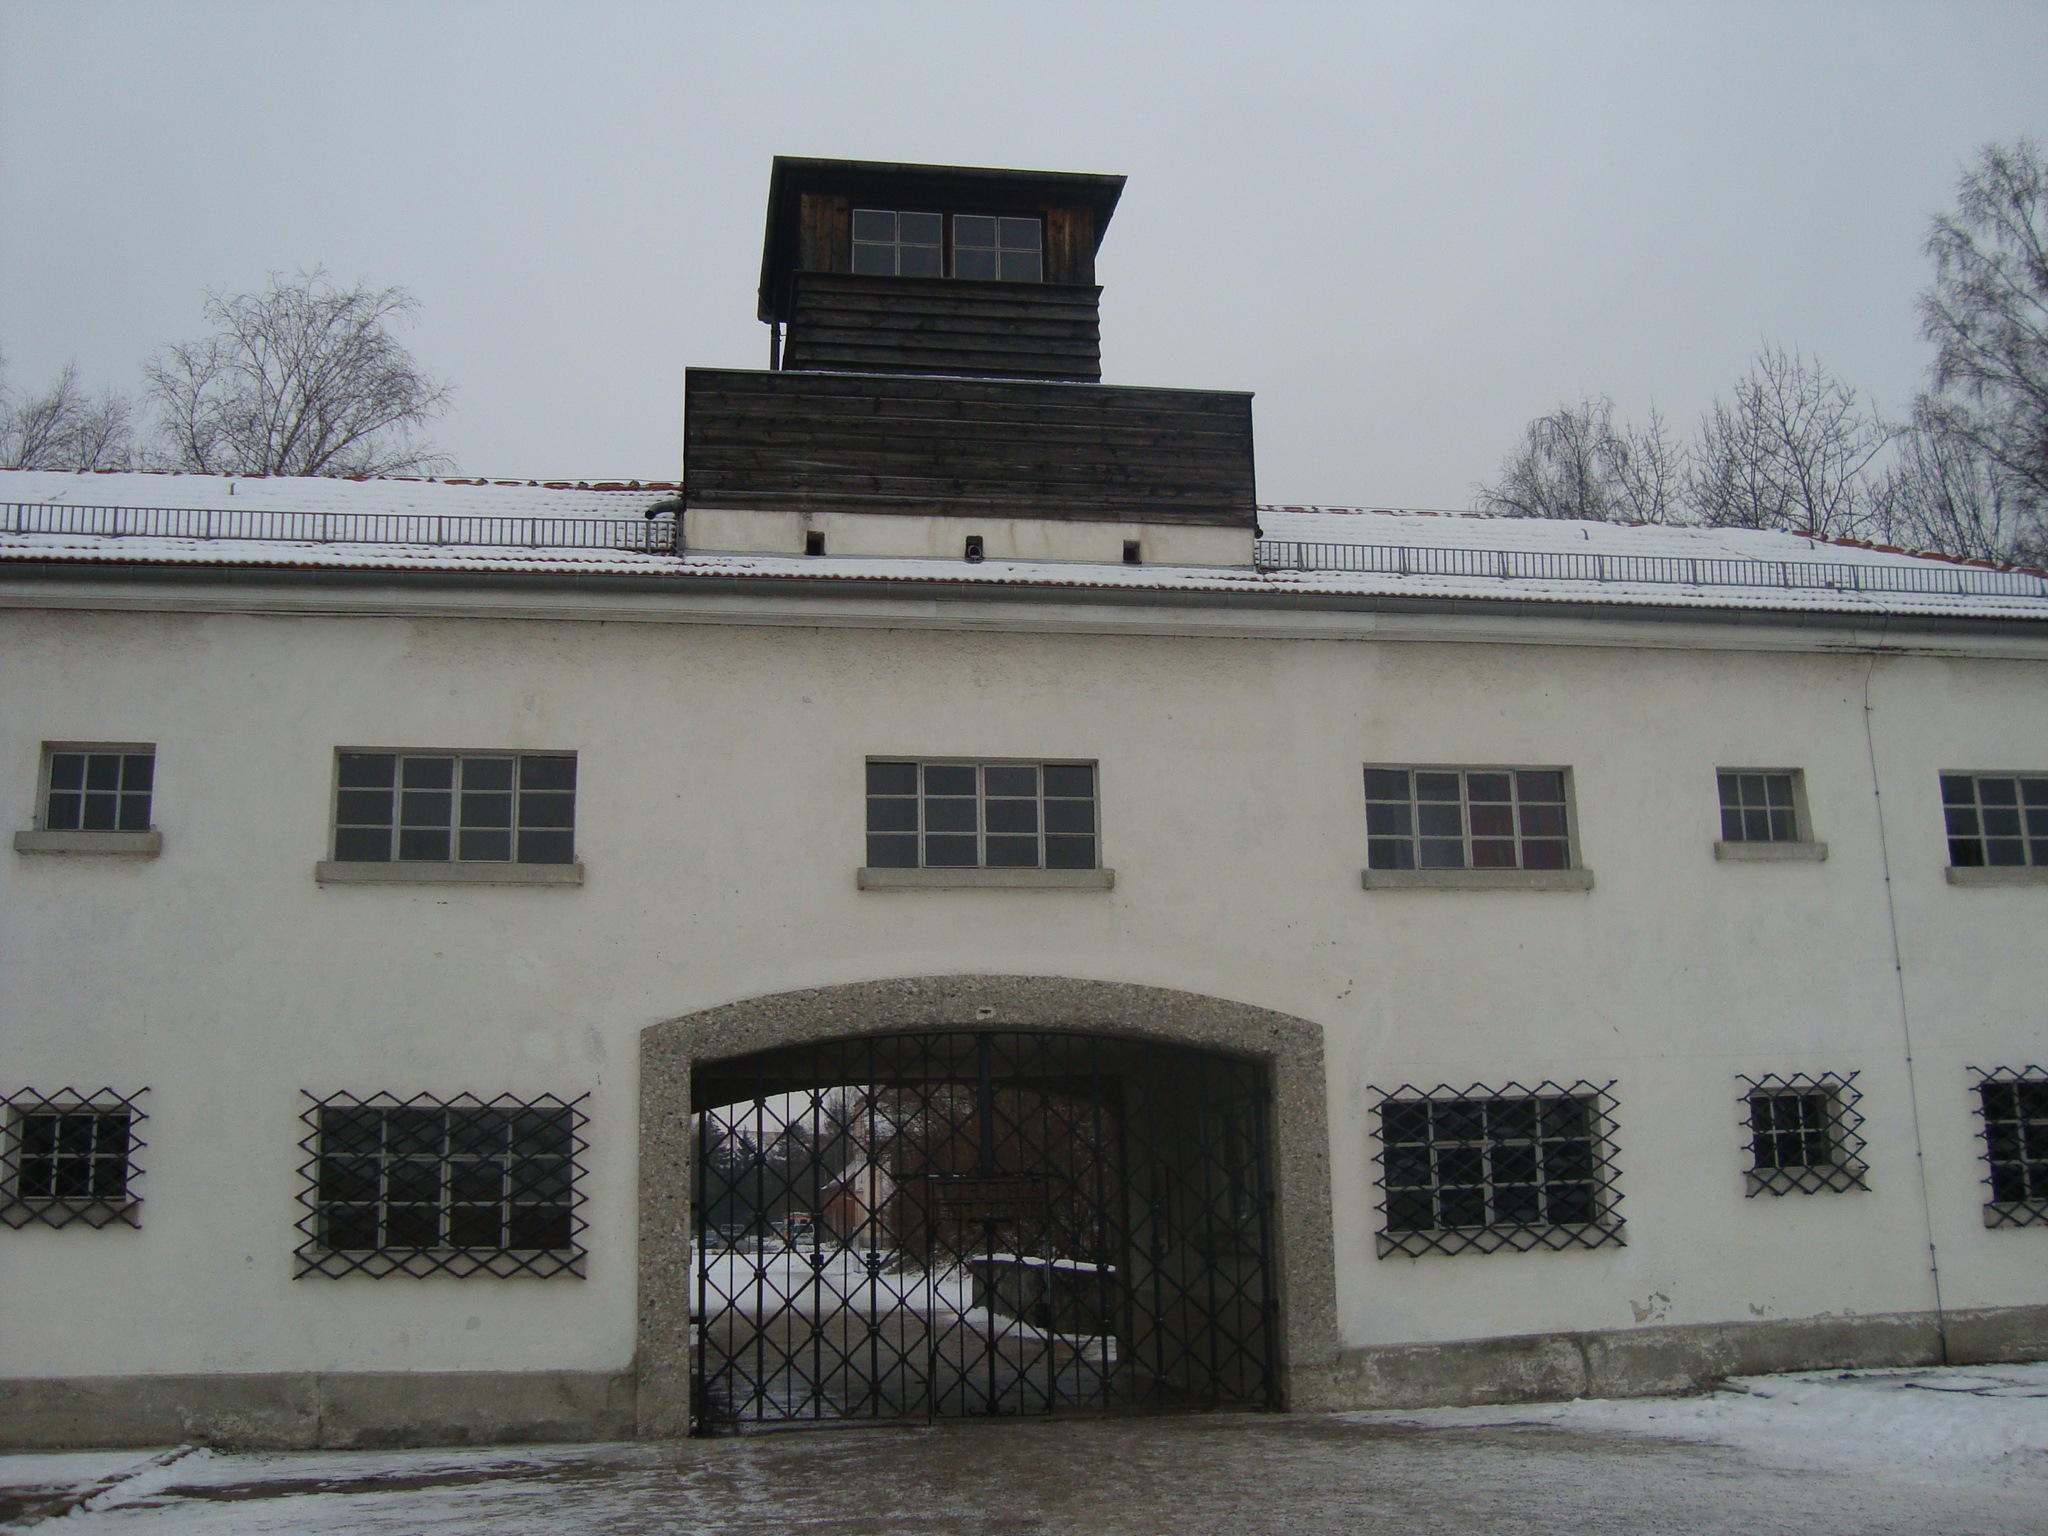 Entrance to the concentration camp